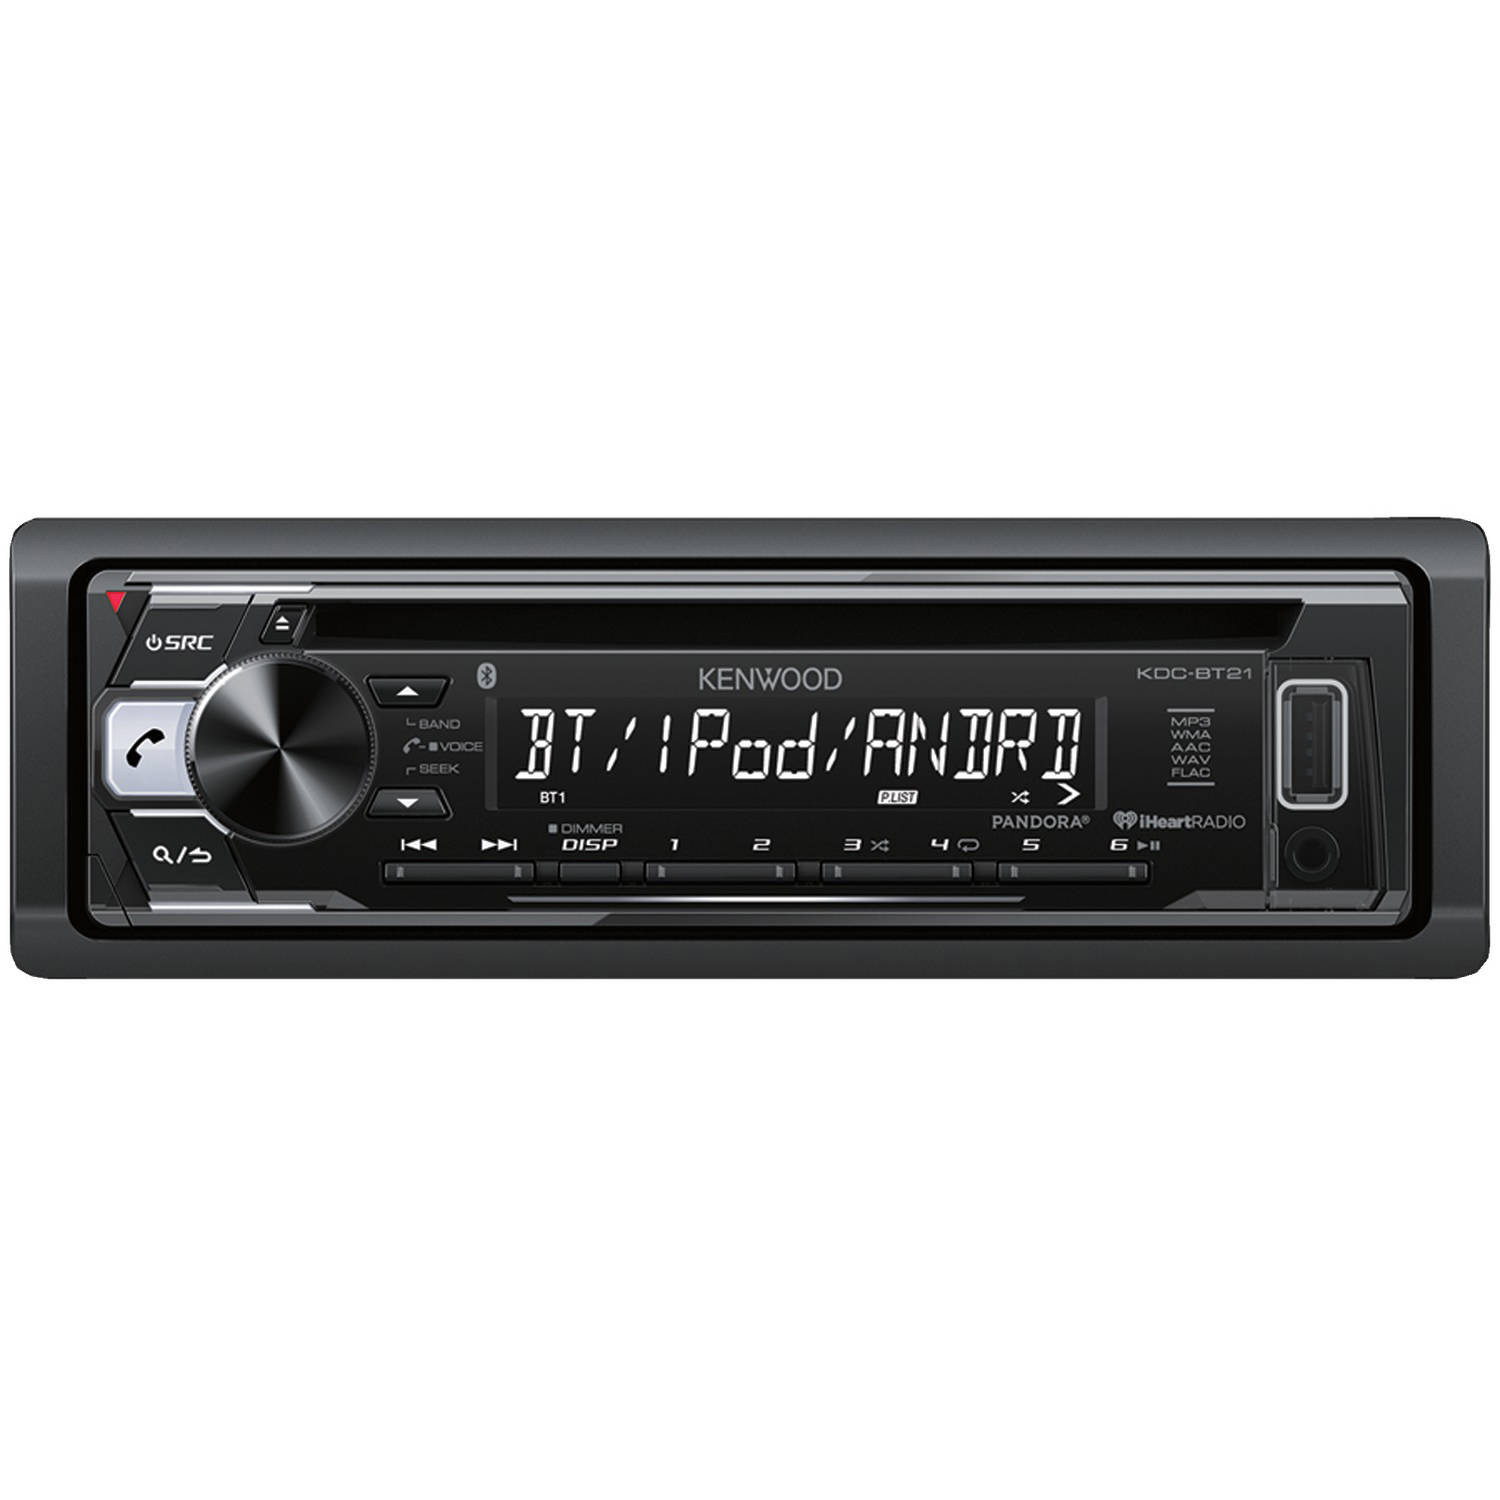 kenwood kdc-bt21 car stereo receiver with bluetooth